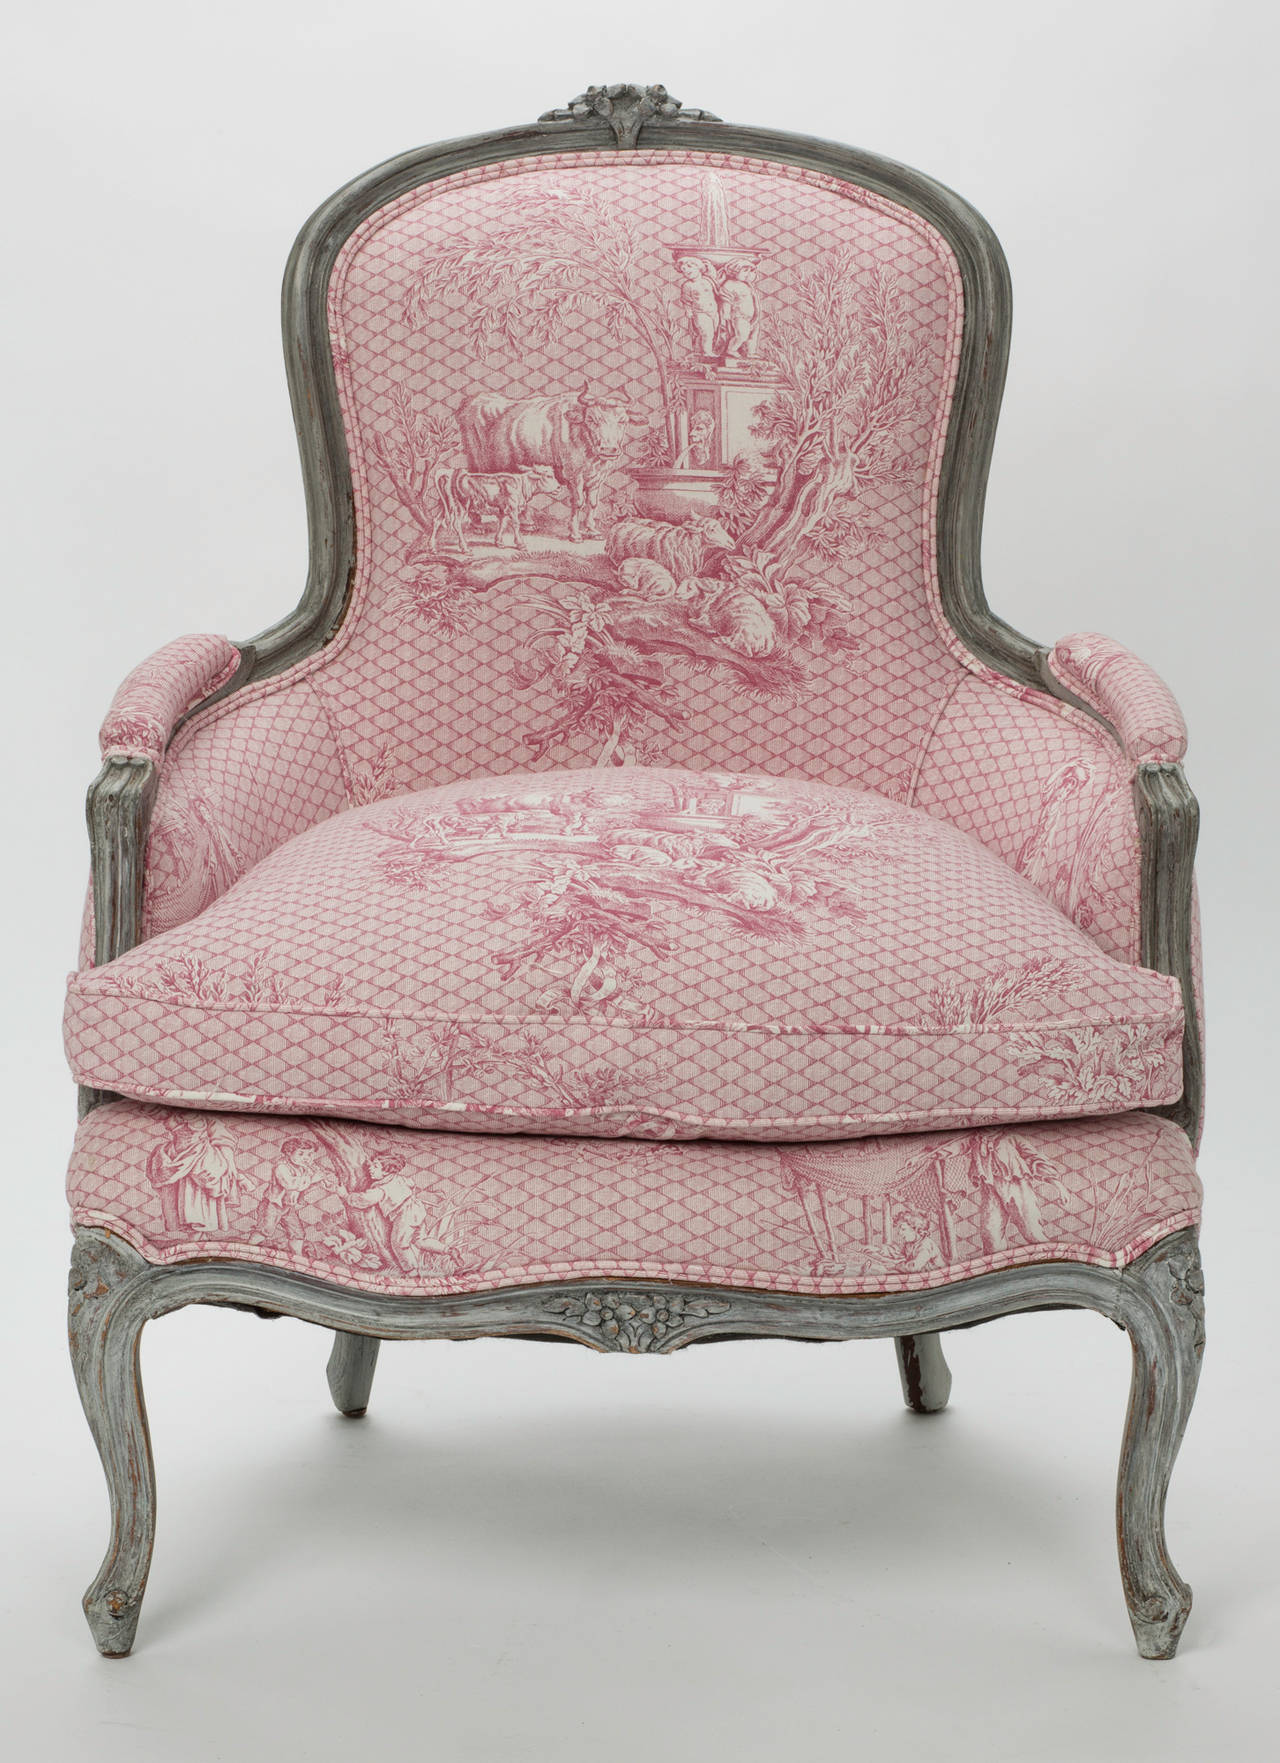 Toile Chair French Painted Armchairs Pair At 1stdibs